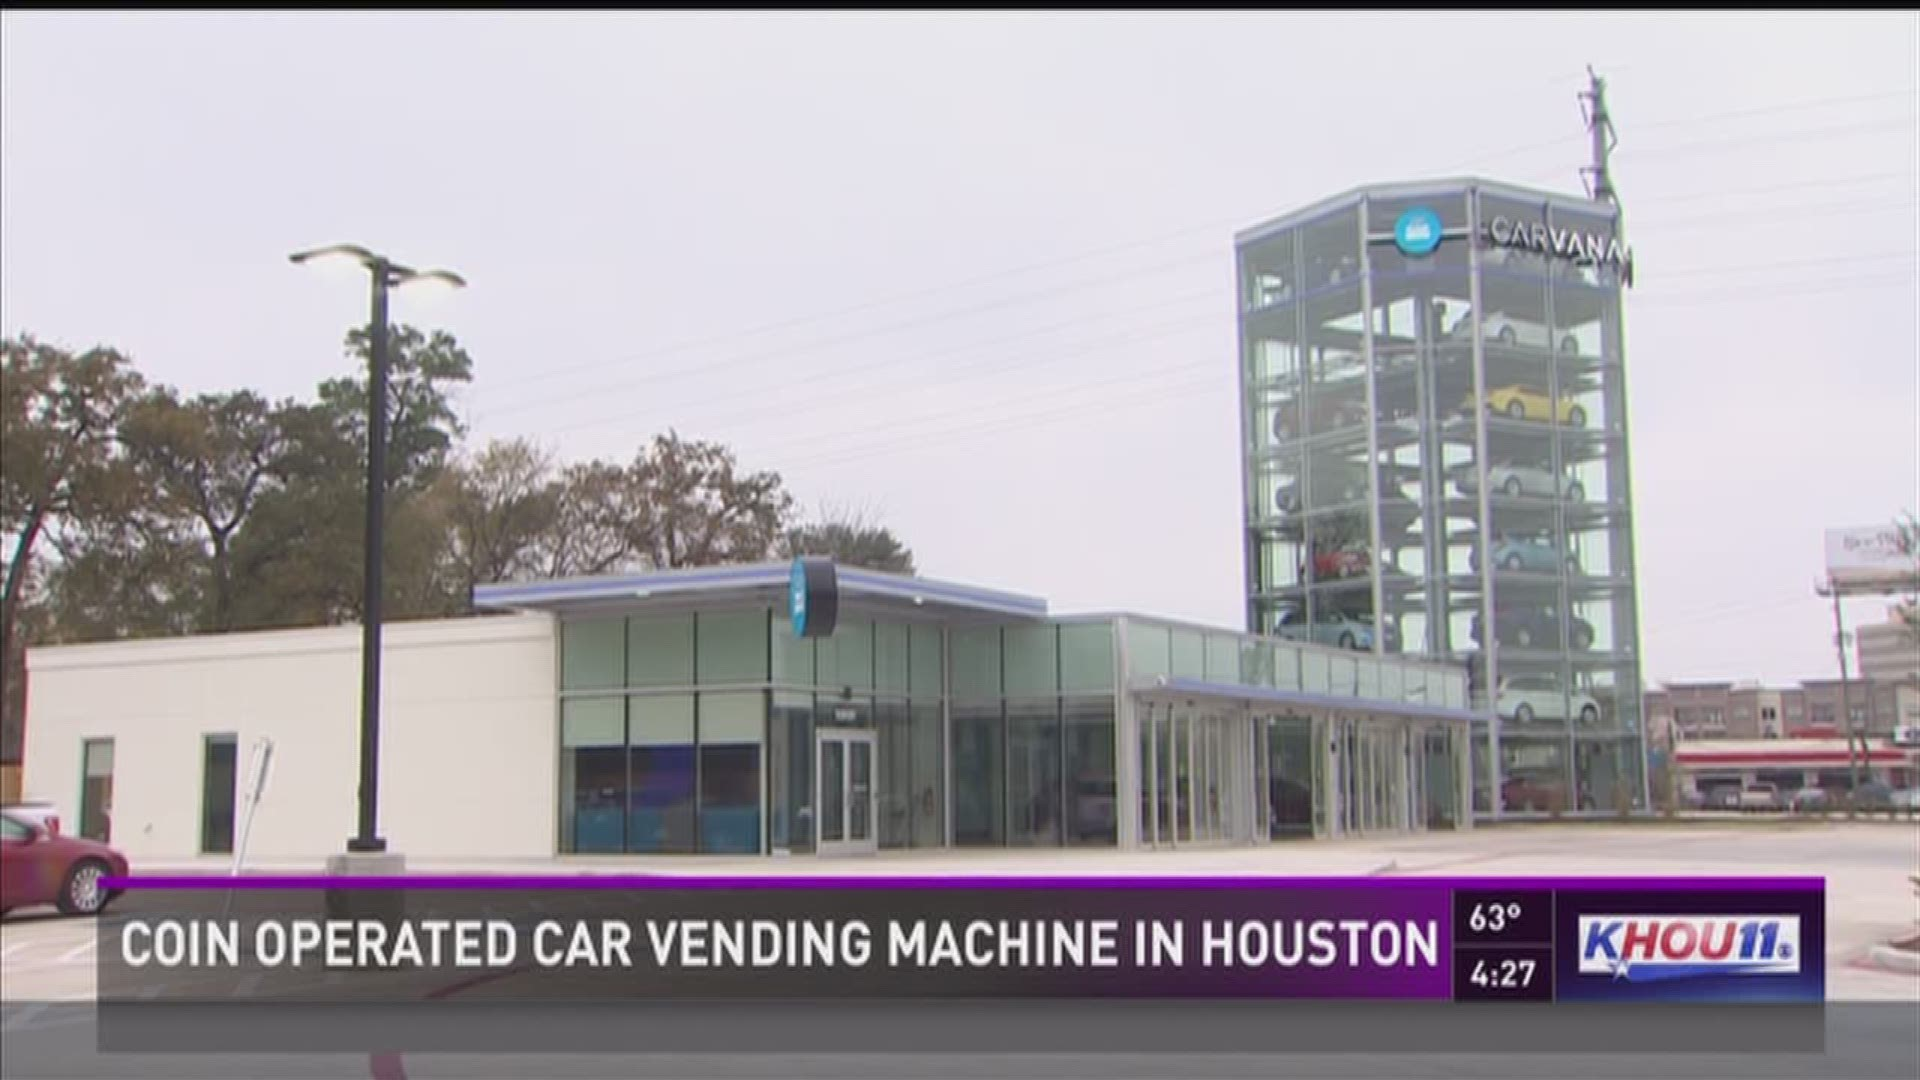 How Much Does A Vending Machine Cost To Buy